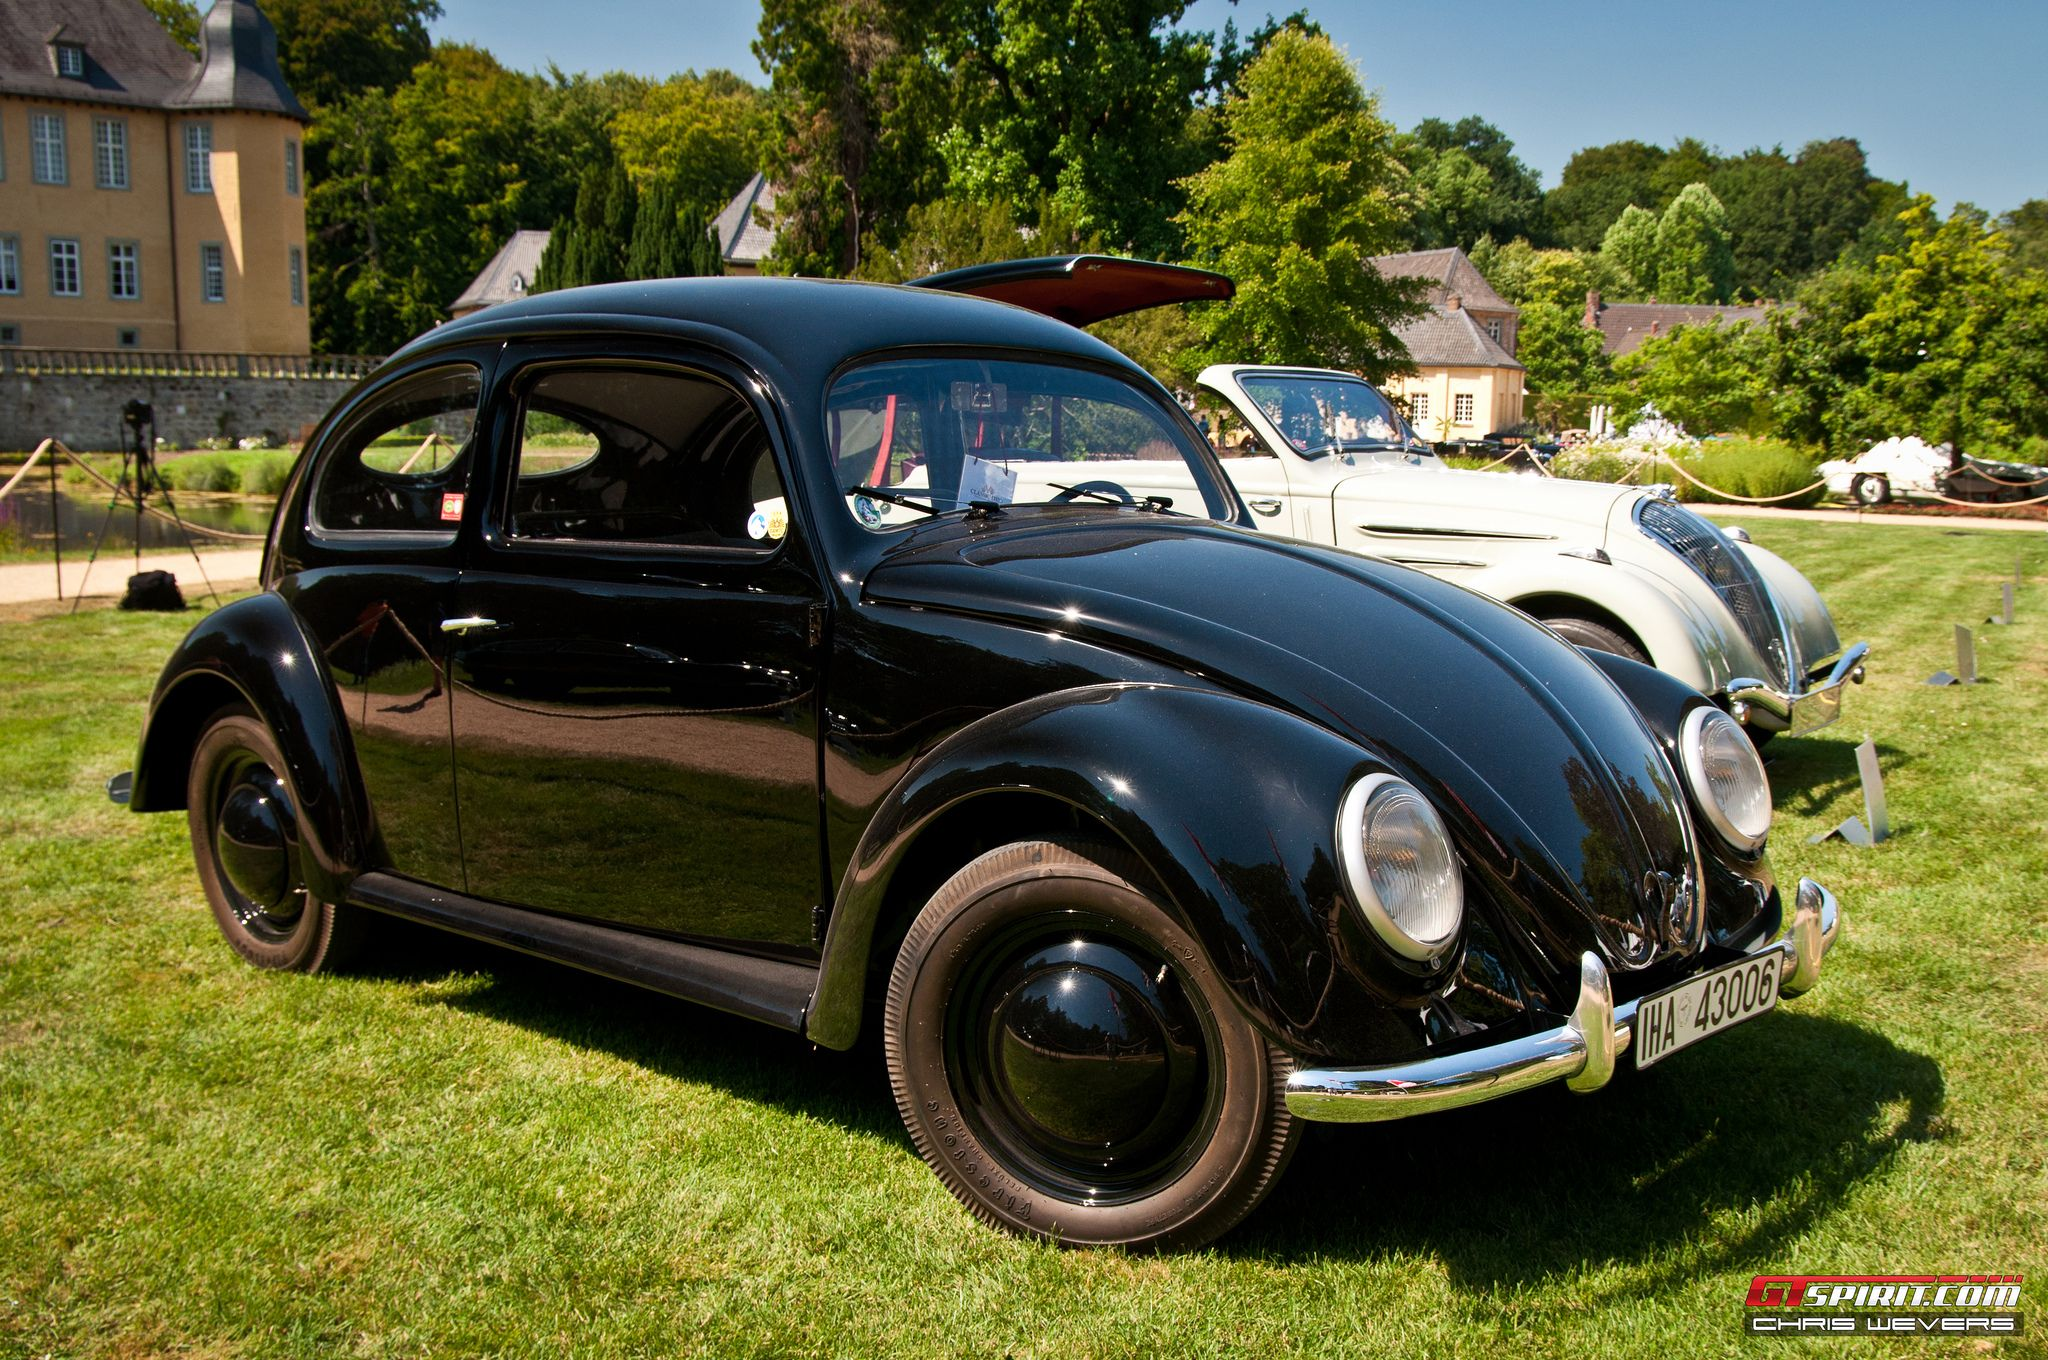 Vw Type 38 Prototype One Of The Oldest Beetle In World Built 1938 By Ferdinand Porsche Black Vw38 Marked Birth Successful